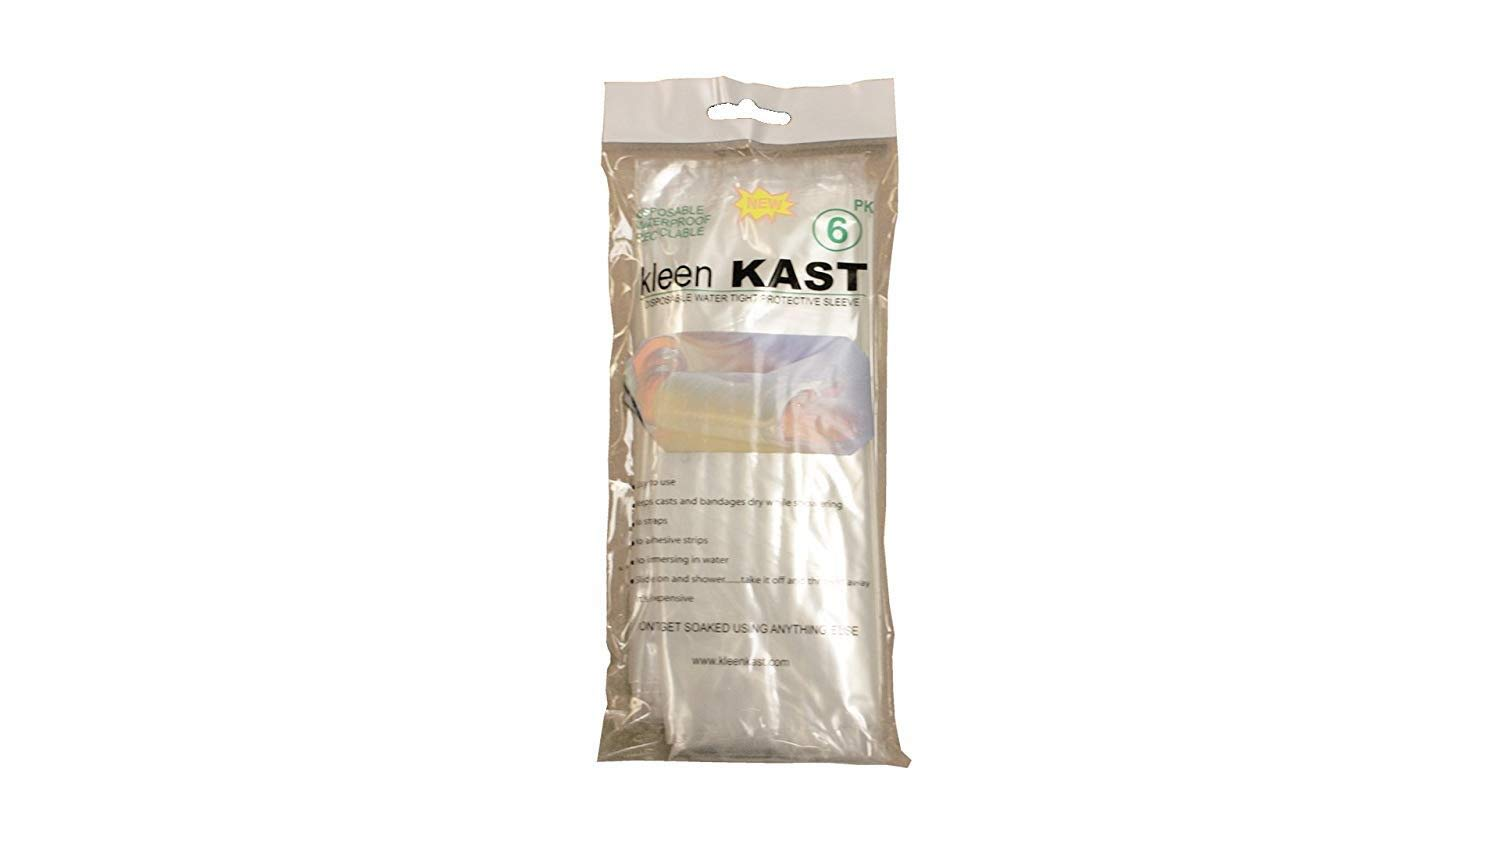 Assigned by Sterling Seal & Supply, (STCC) KleenKastx1.AZ.Toe Kleen Kast Protective Sleeves Specially Adapted for Orthopedic Casts and Splints for Use in The Shower, One Size, Clear (Six Protectors) by Assigned by Sterling Seal & Supply, (STCC)